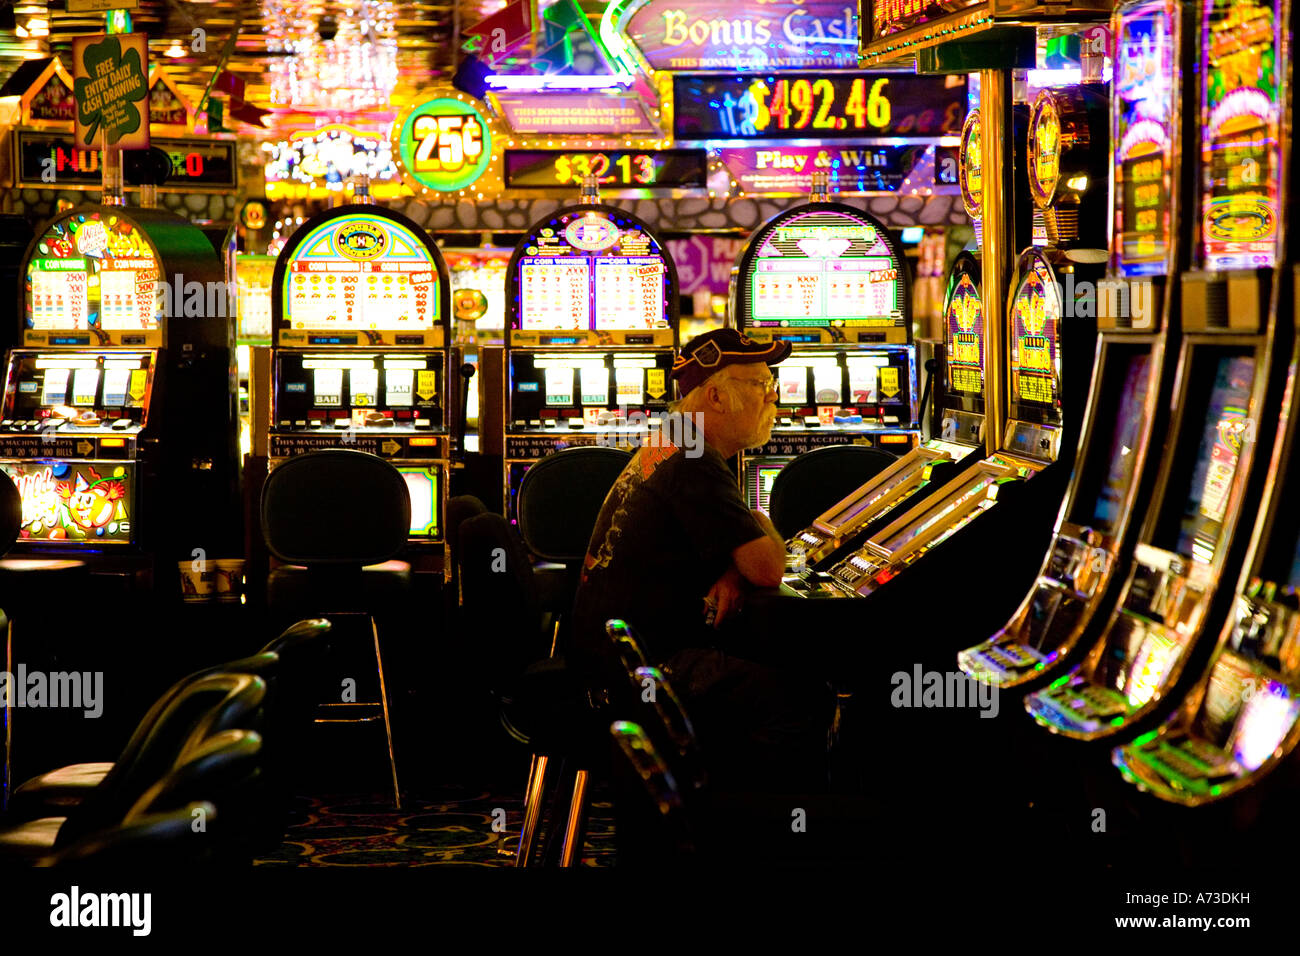 Casino gaming reno how to play best slot machines to play at the casino